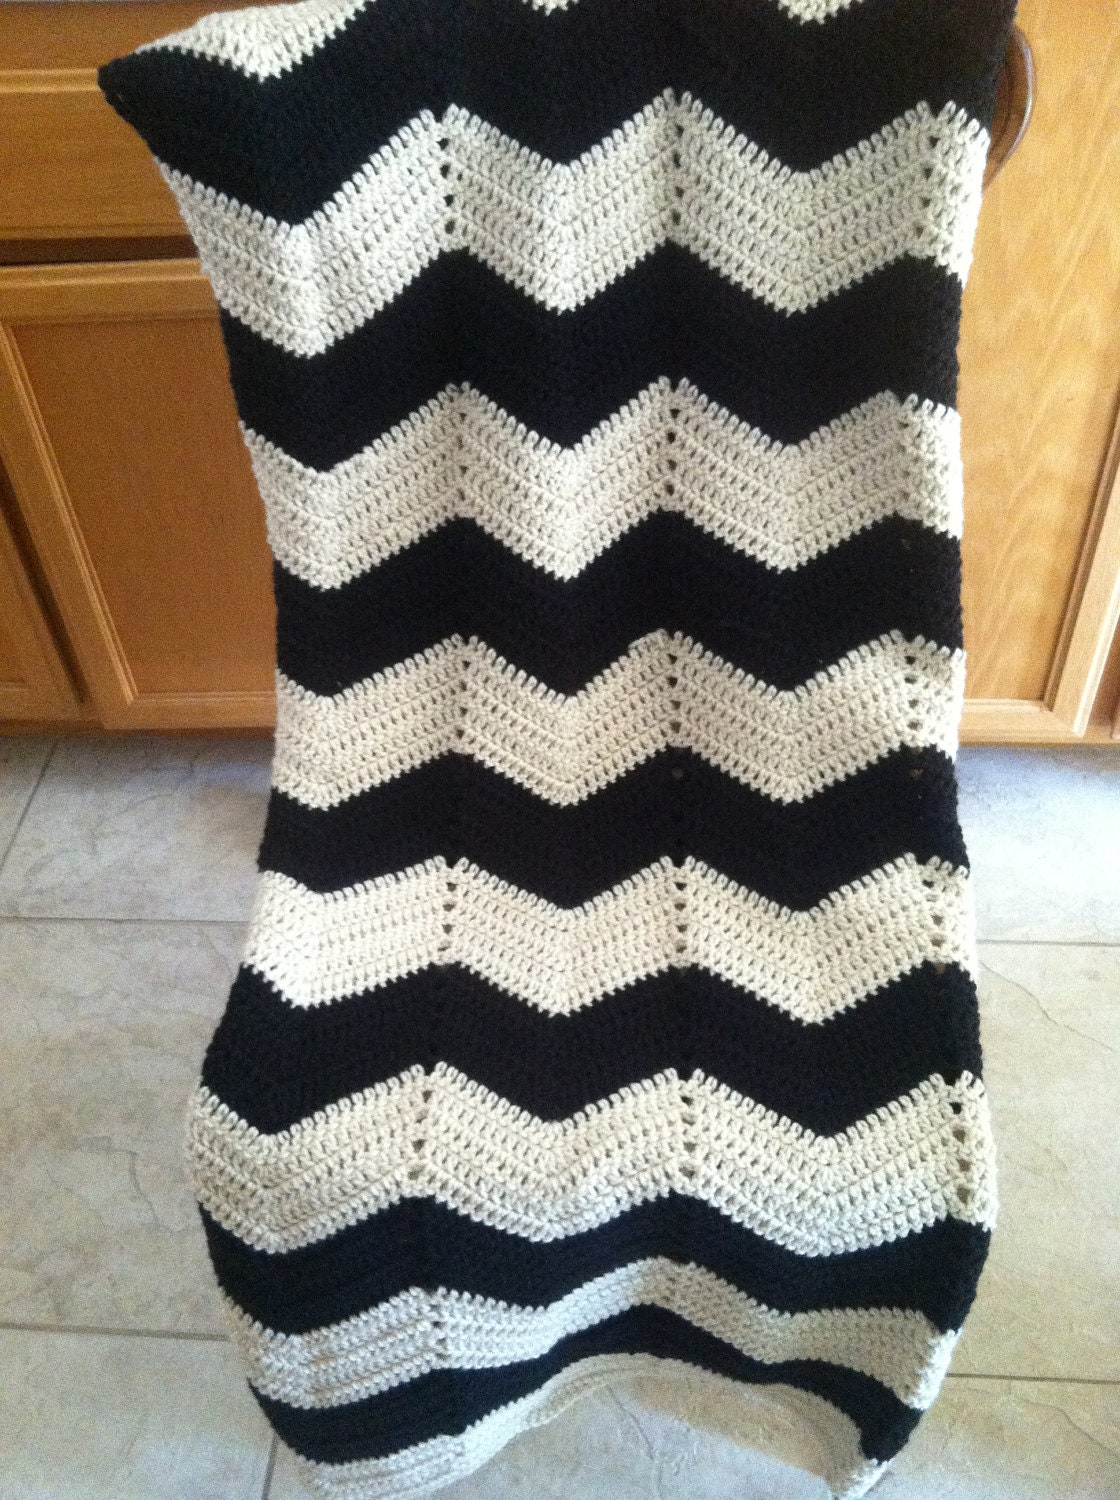 Crochet Blanket Black And White Black And White Crochet